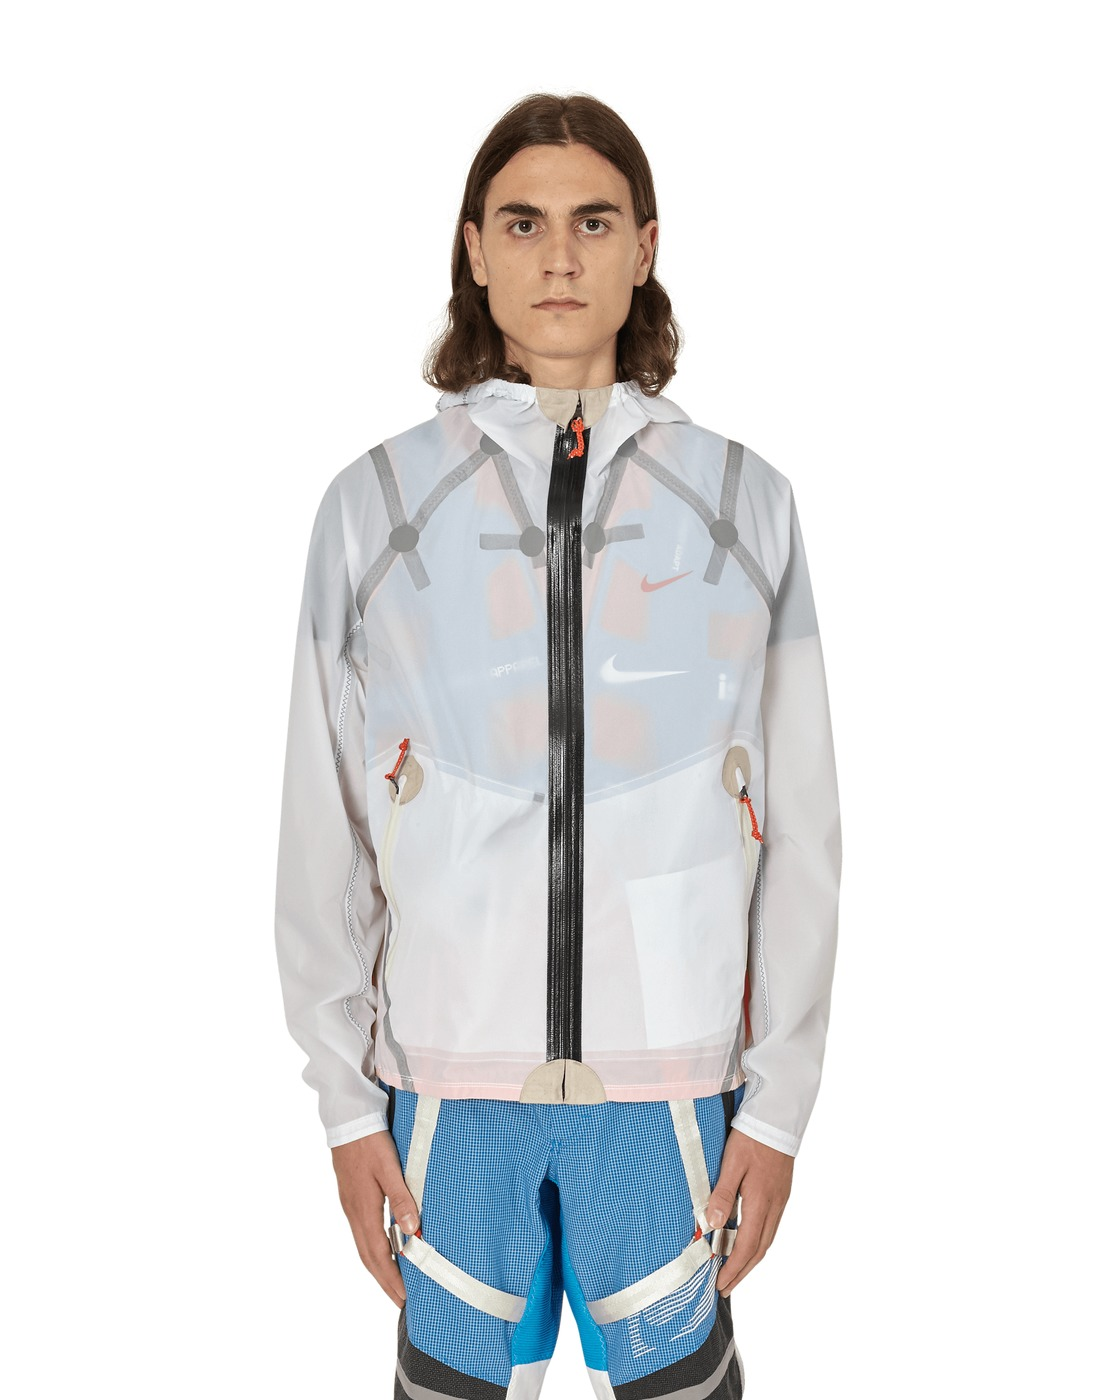 Nike Special Project Ispa Inflate Jacket White/Team Orange